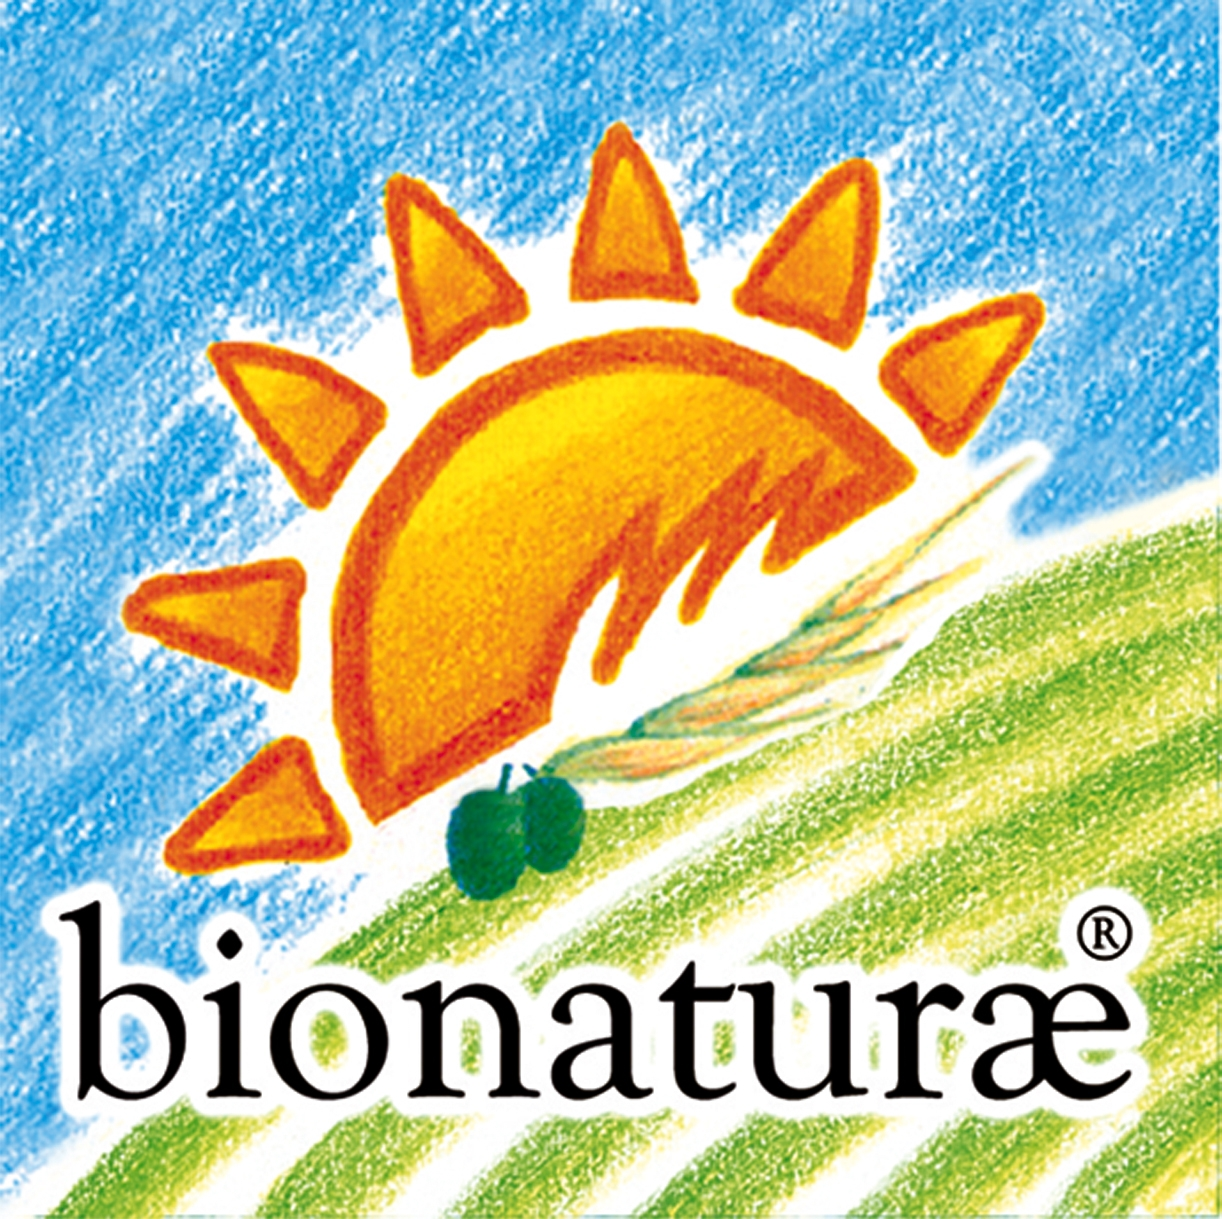 bionaturae color logo 300dpi.jpg